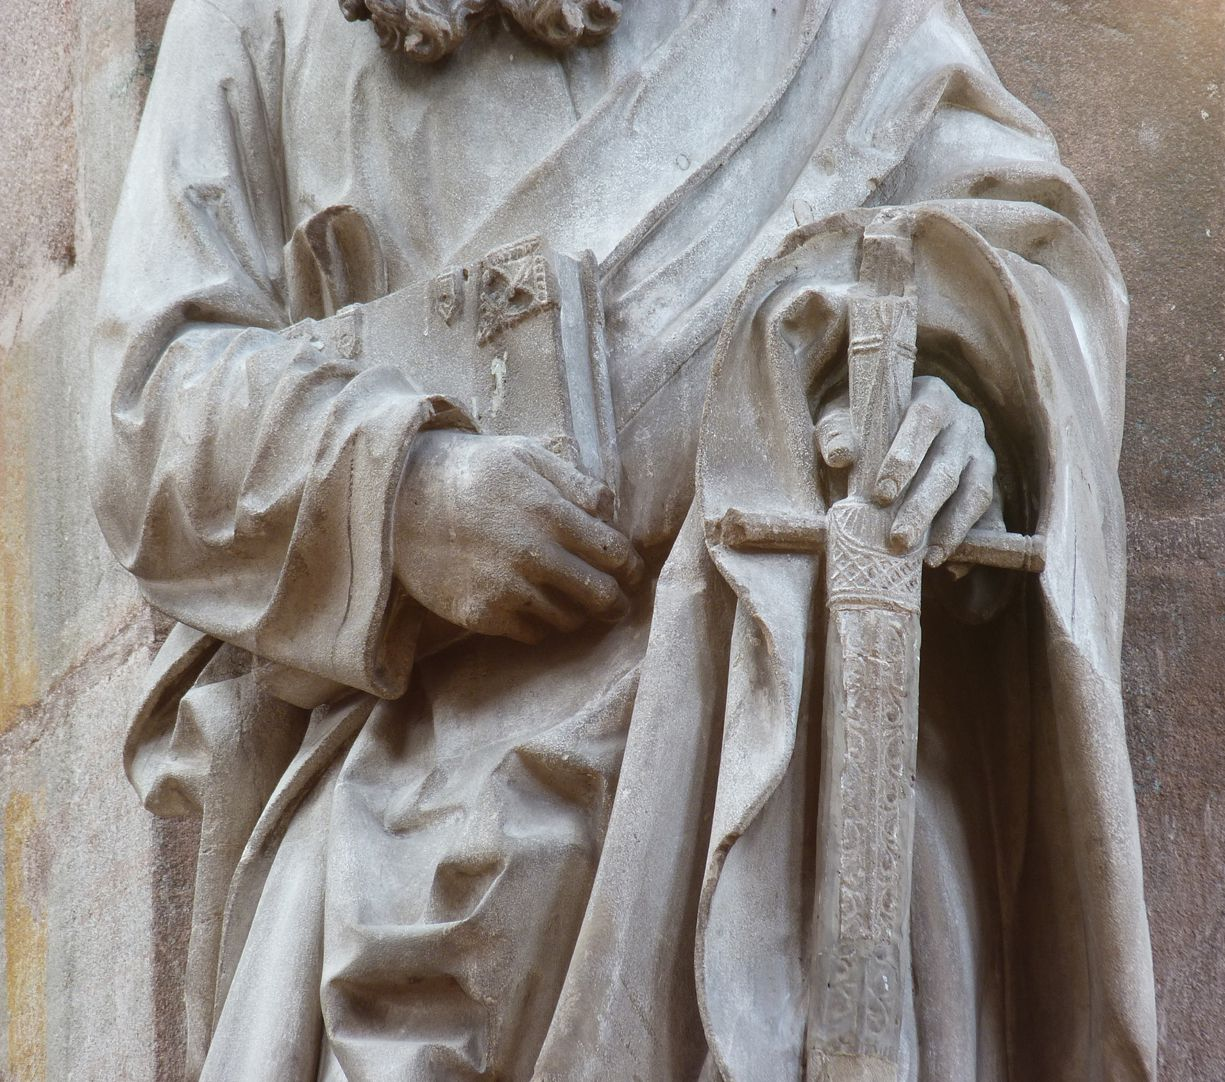 St. Paul Detail view with hands, book and sword